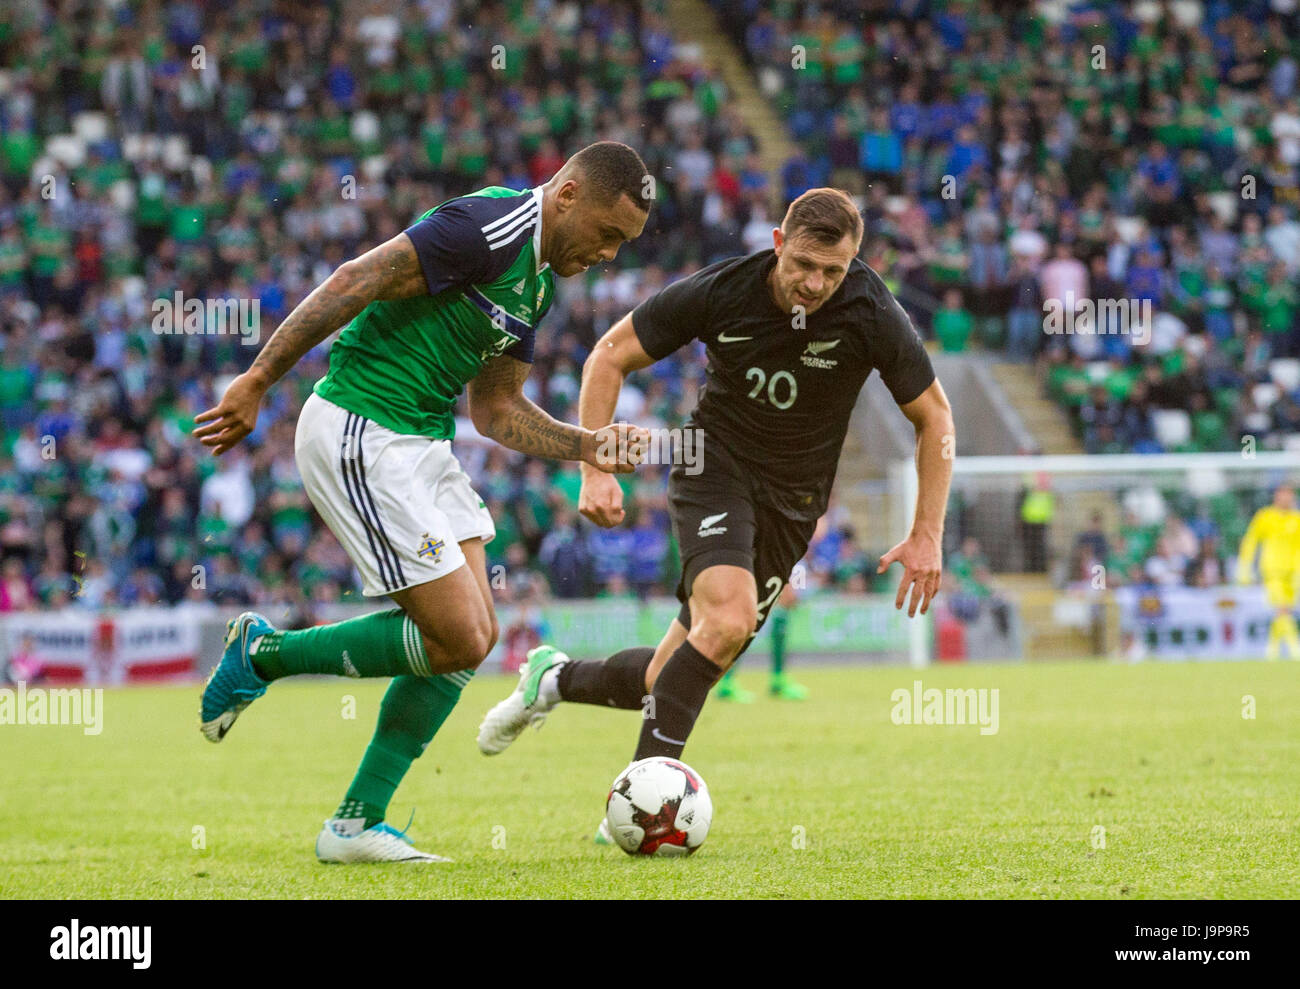 c1b6265e7d Northern Ireland s Josh Magennis (left) in action against New Zealand s  Tommy Smith during the international friendly match at Windsor Park